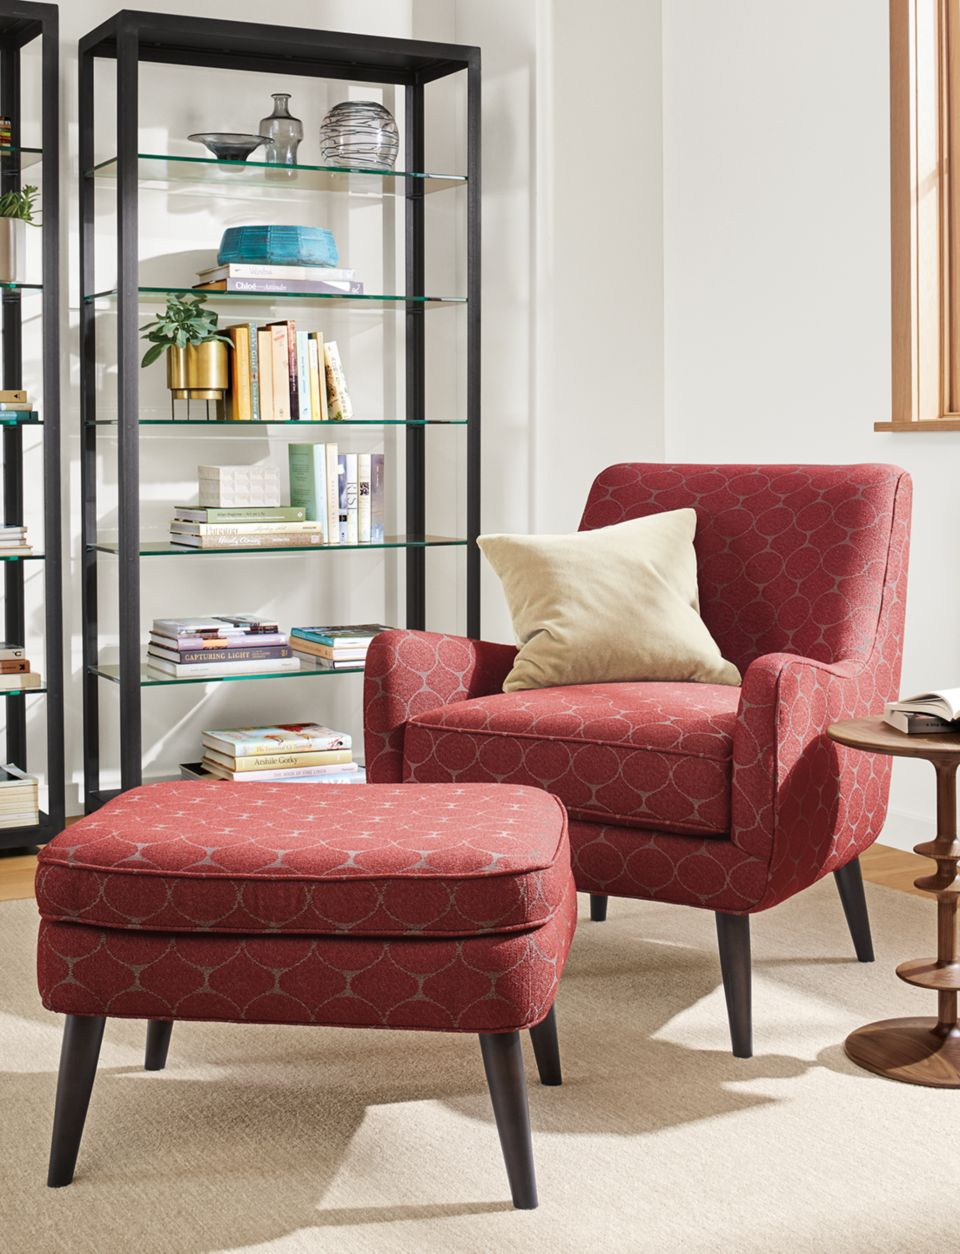 Detail of Quinn chair in Kanto Claret fabric